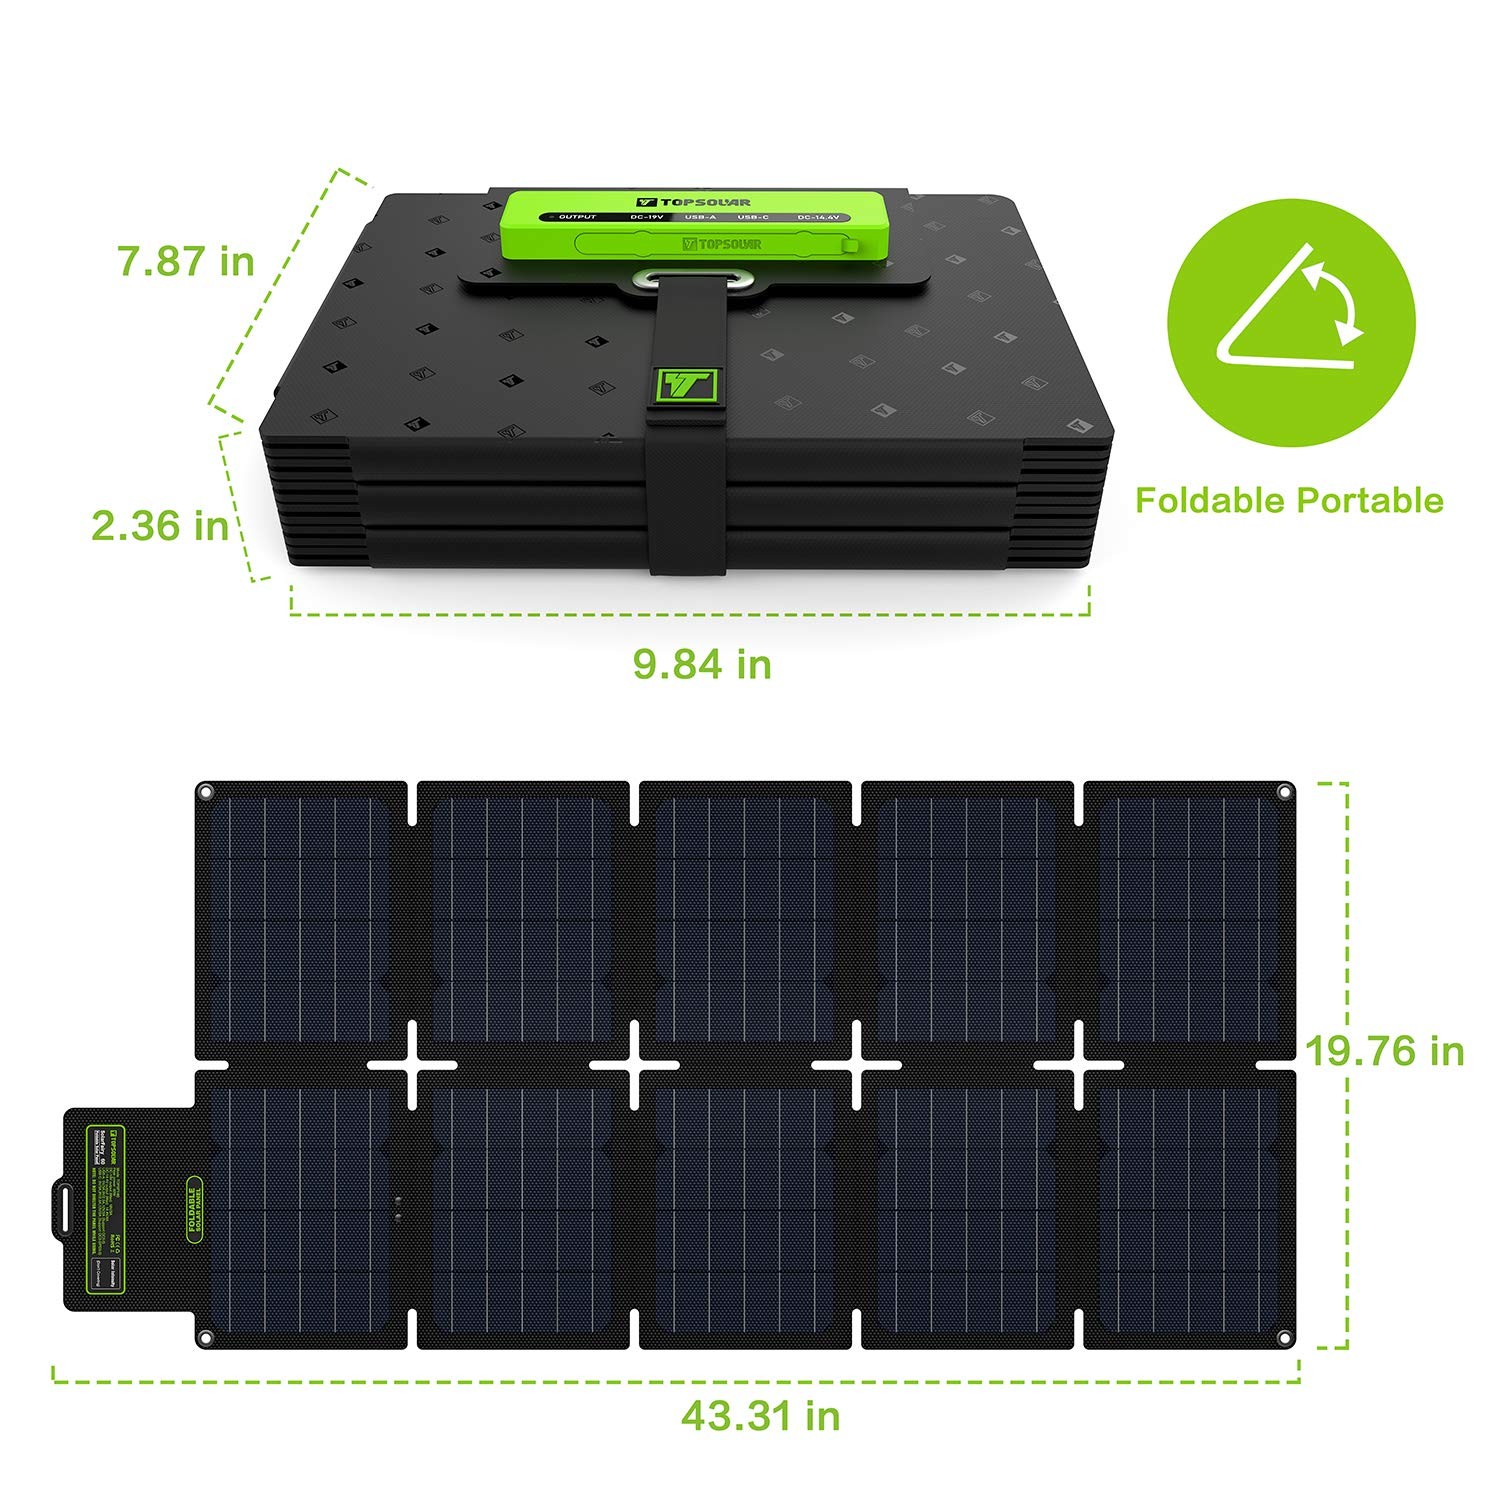 Dual 5V USB /& 19V DC Output Upgrade Topsolar 60W Foldable Solar Panel Battery Charger Kit for Portable Generator Power Station Cell Phones Laptop 12V Car Boat RV Trailer Battery Charge